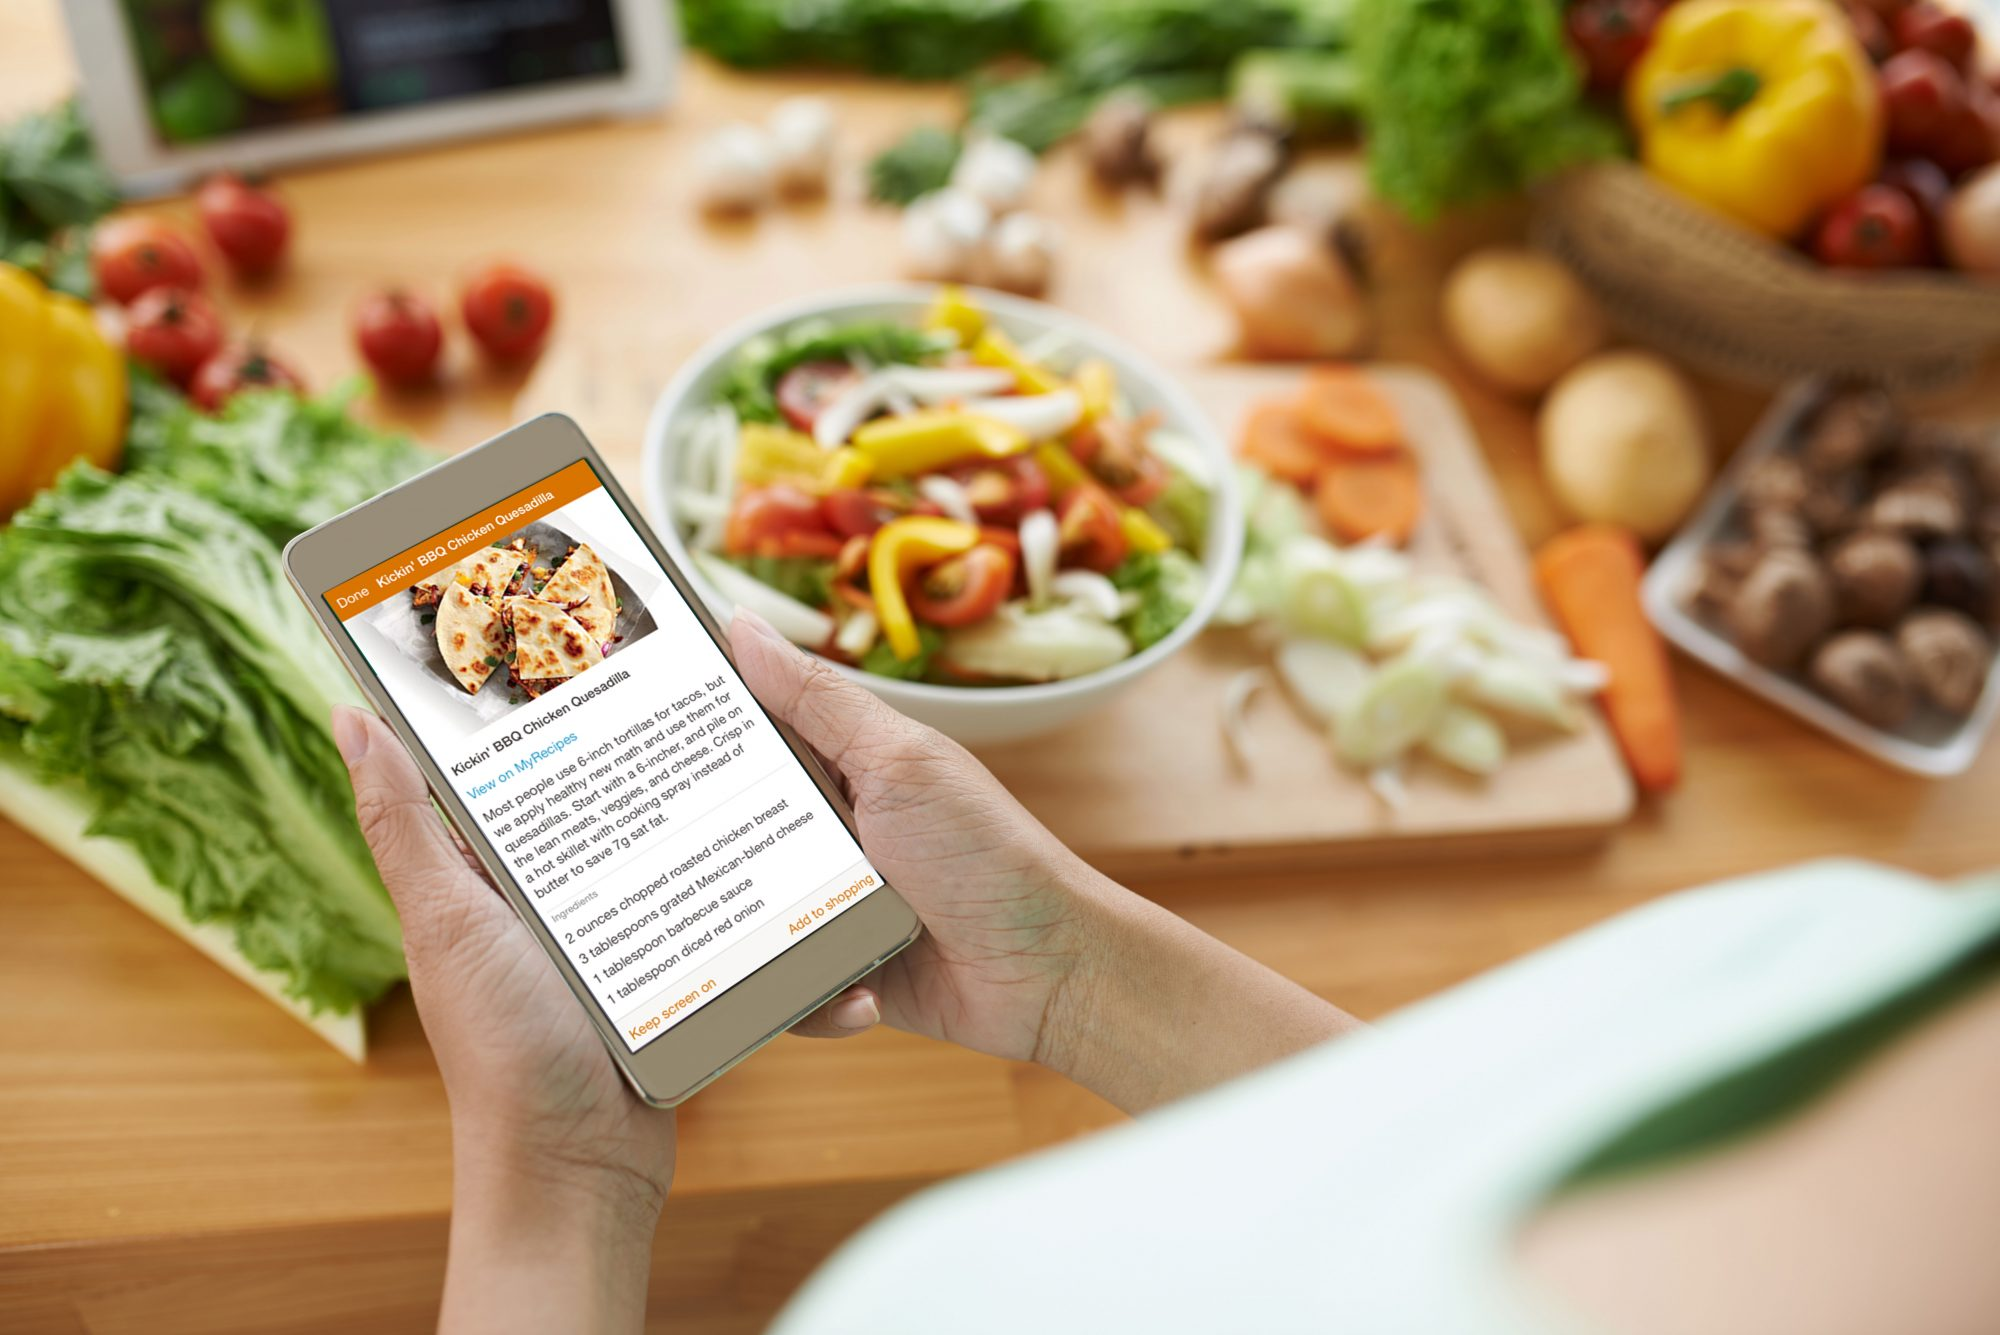 This App Takes All the Stress Out of Meal Planning